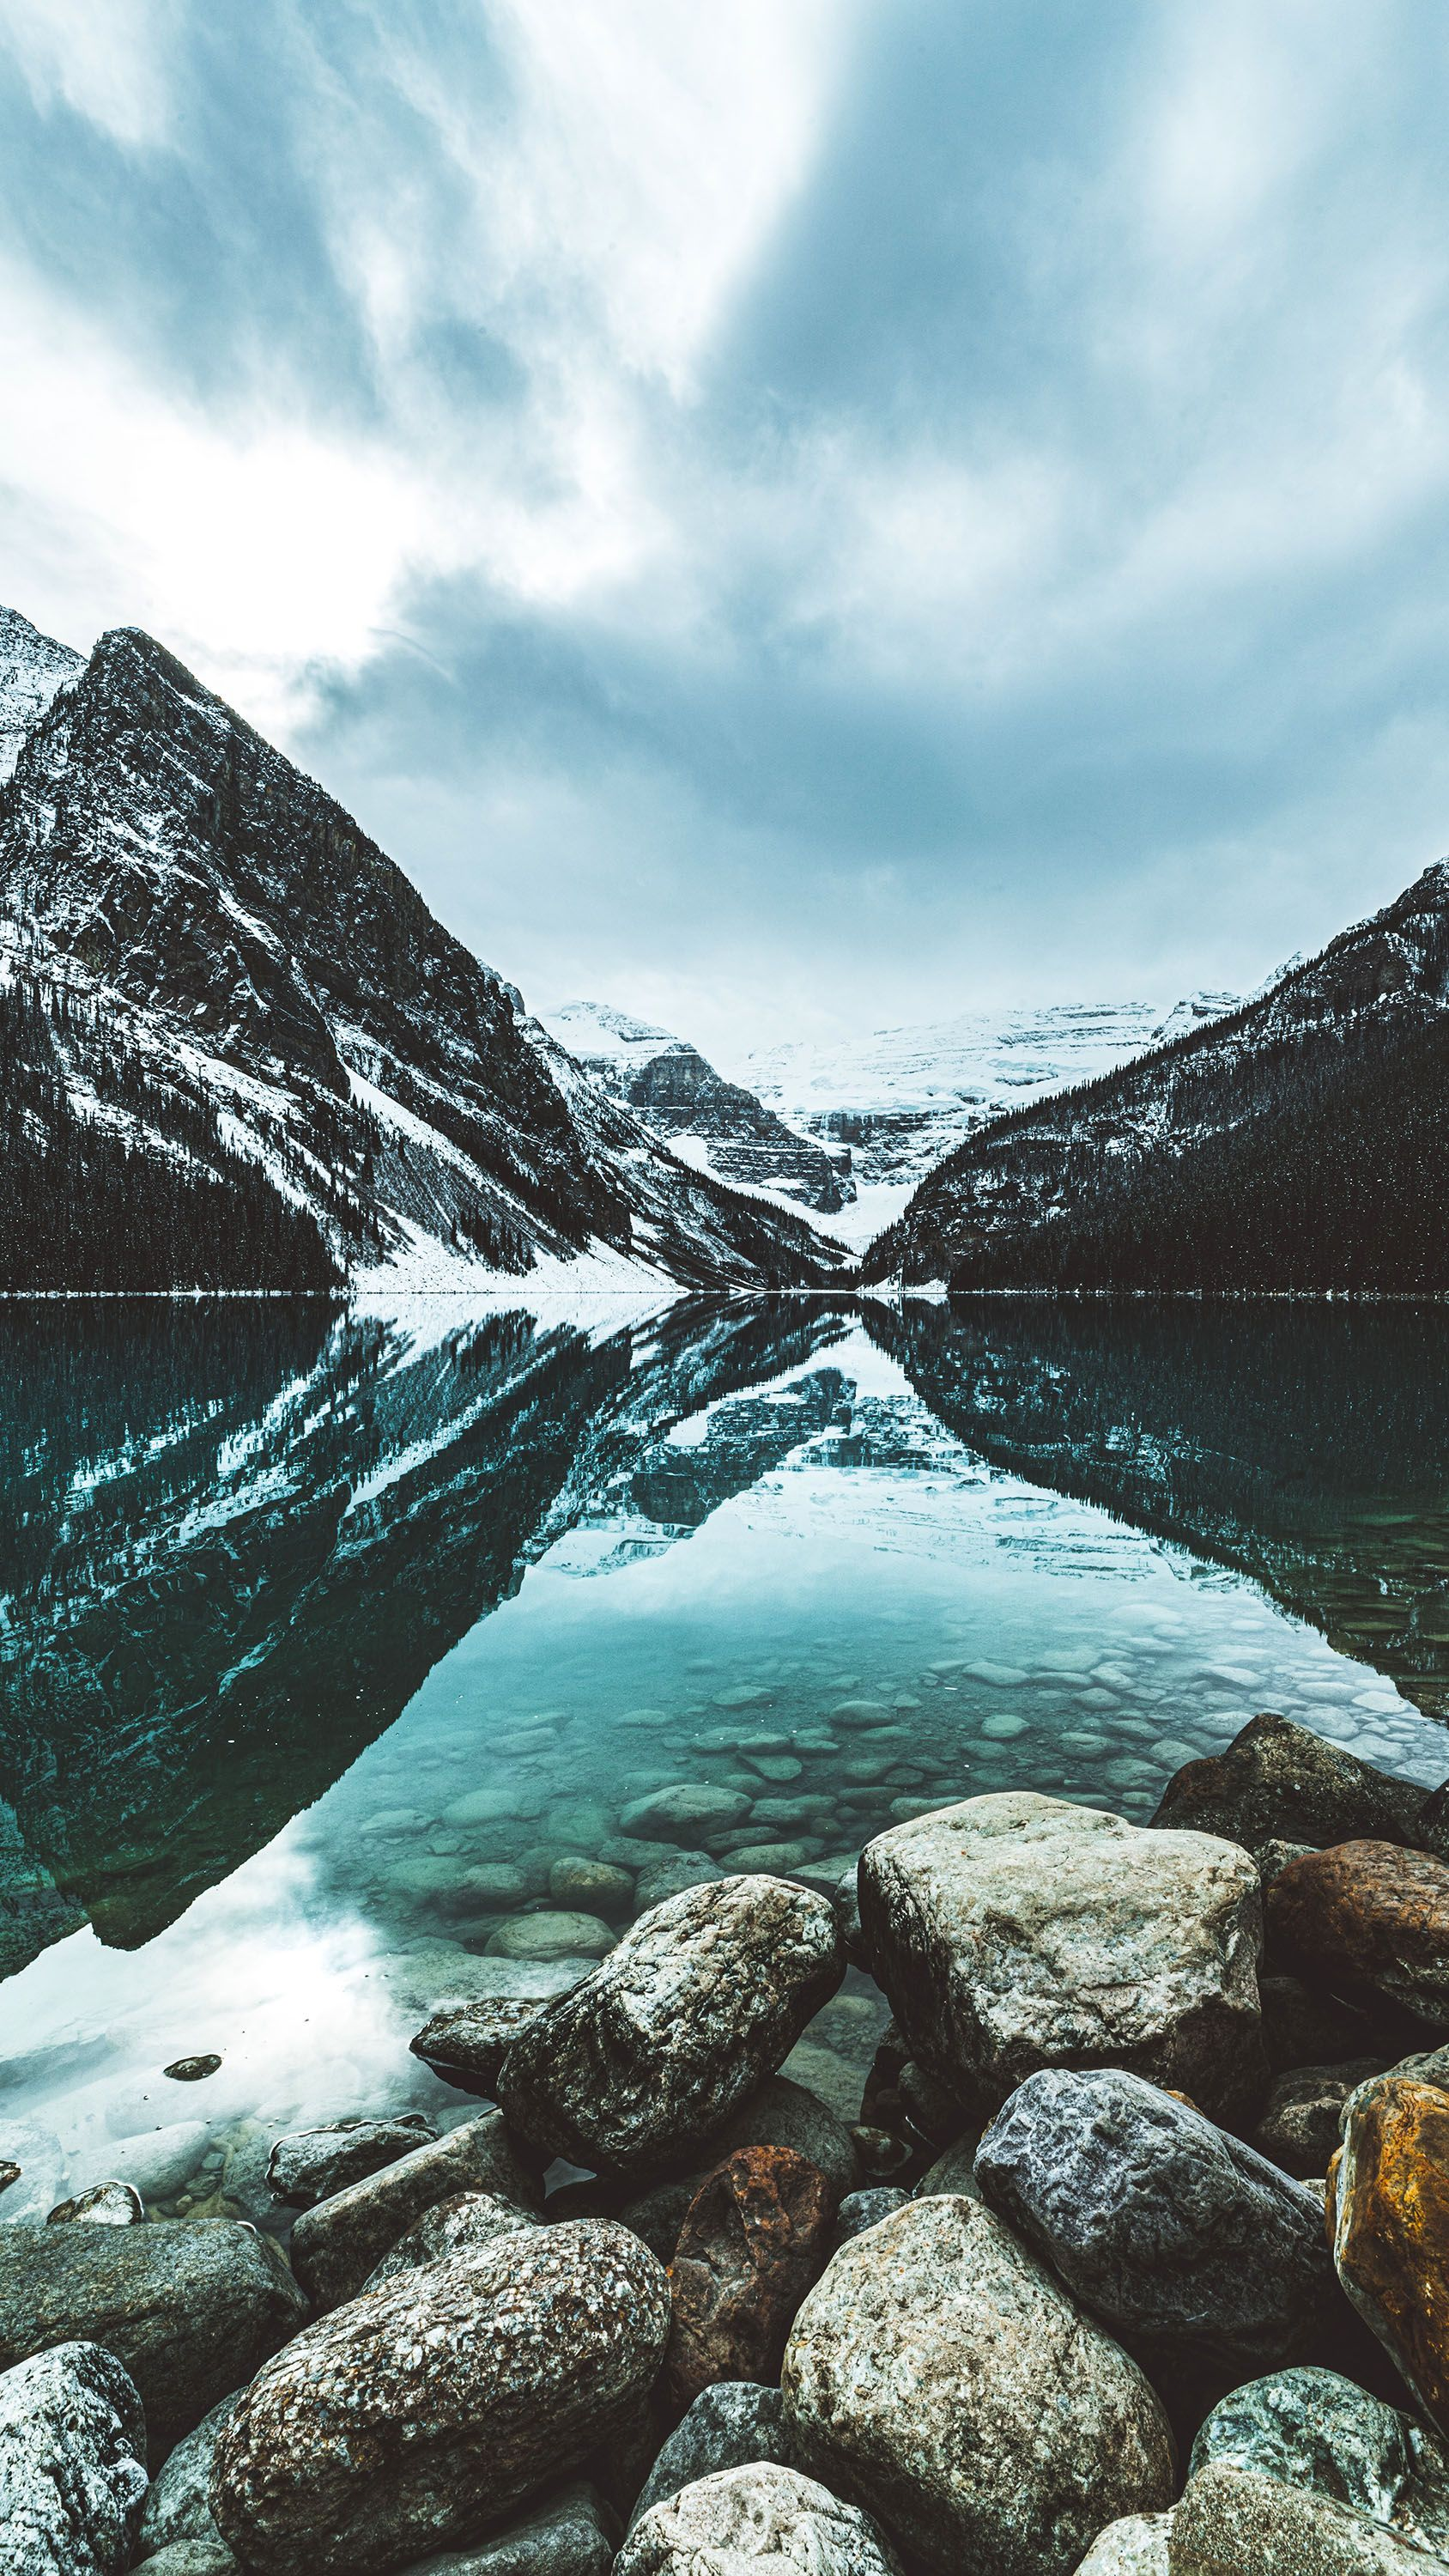 Rocks Mountains Lake Water Snow Reflection Photooftheday